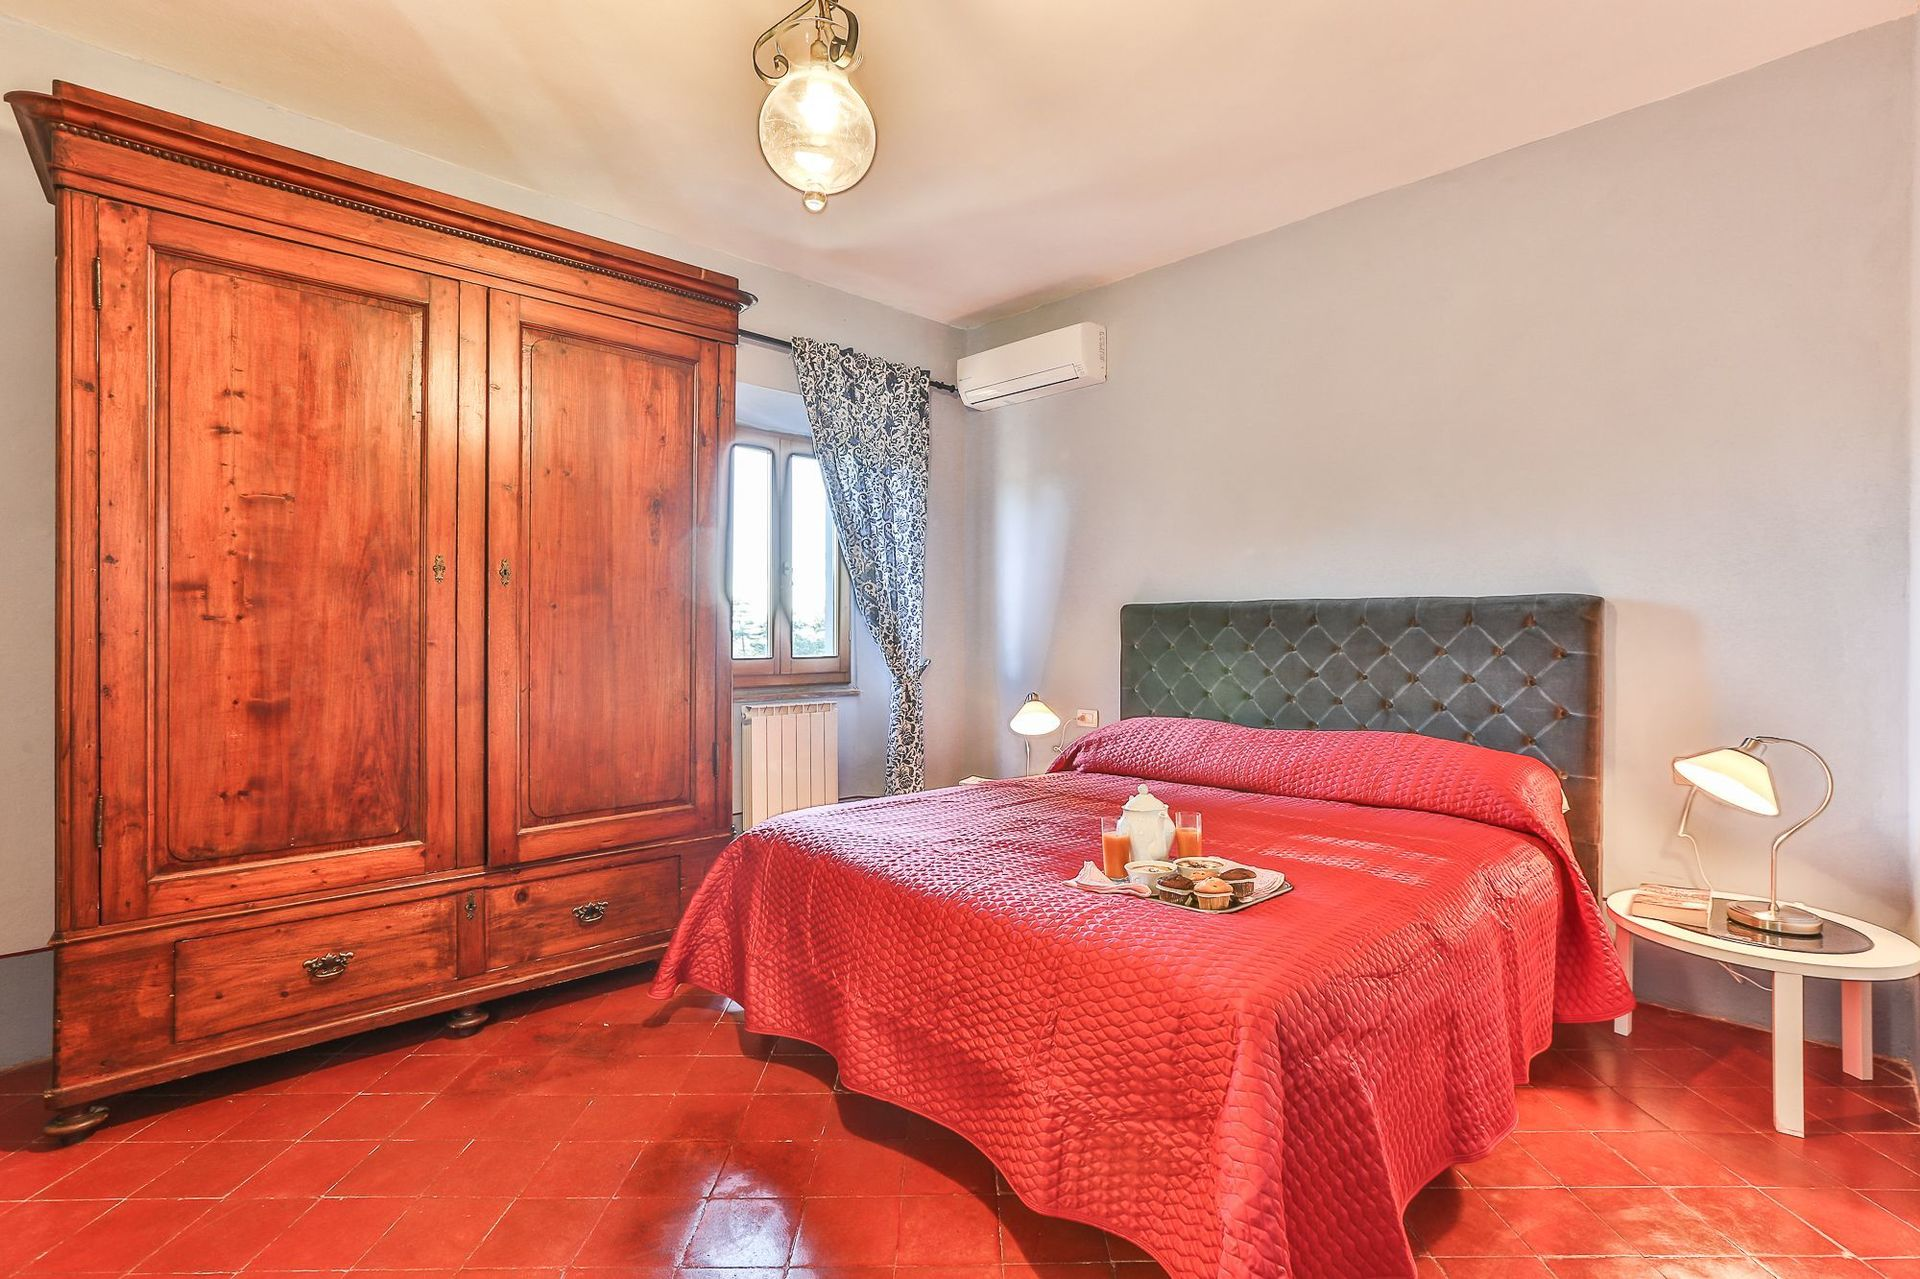 Pergine Valdarno Villa Vacation Rental Villa Fracassini that